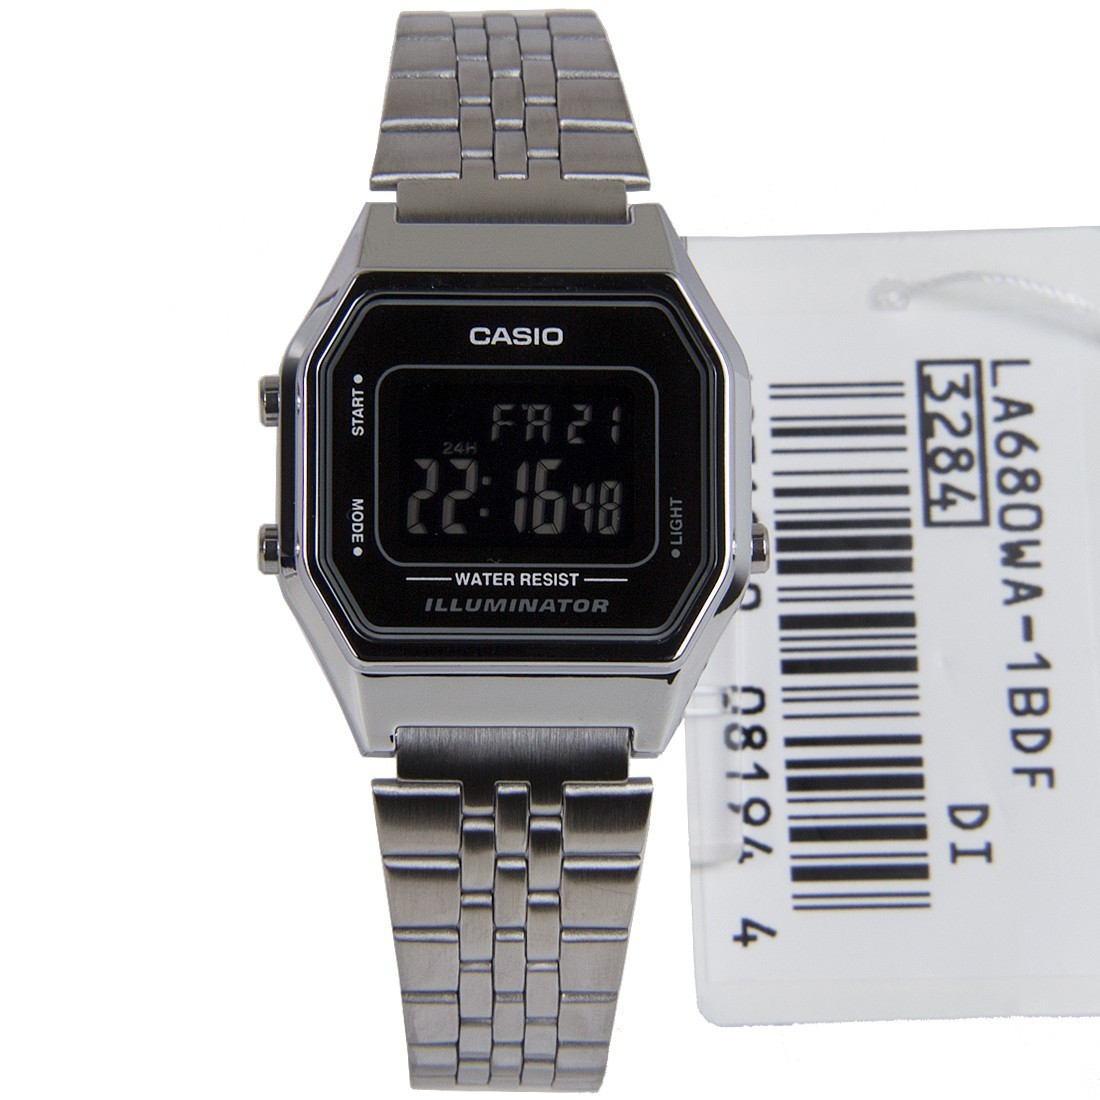 LA680WA 1BDF 1989watch